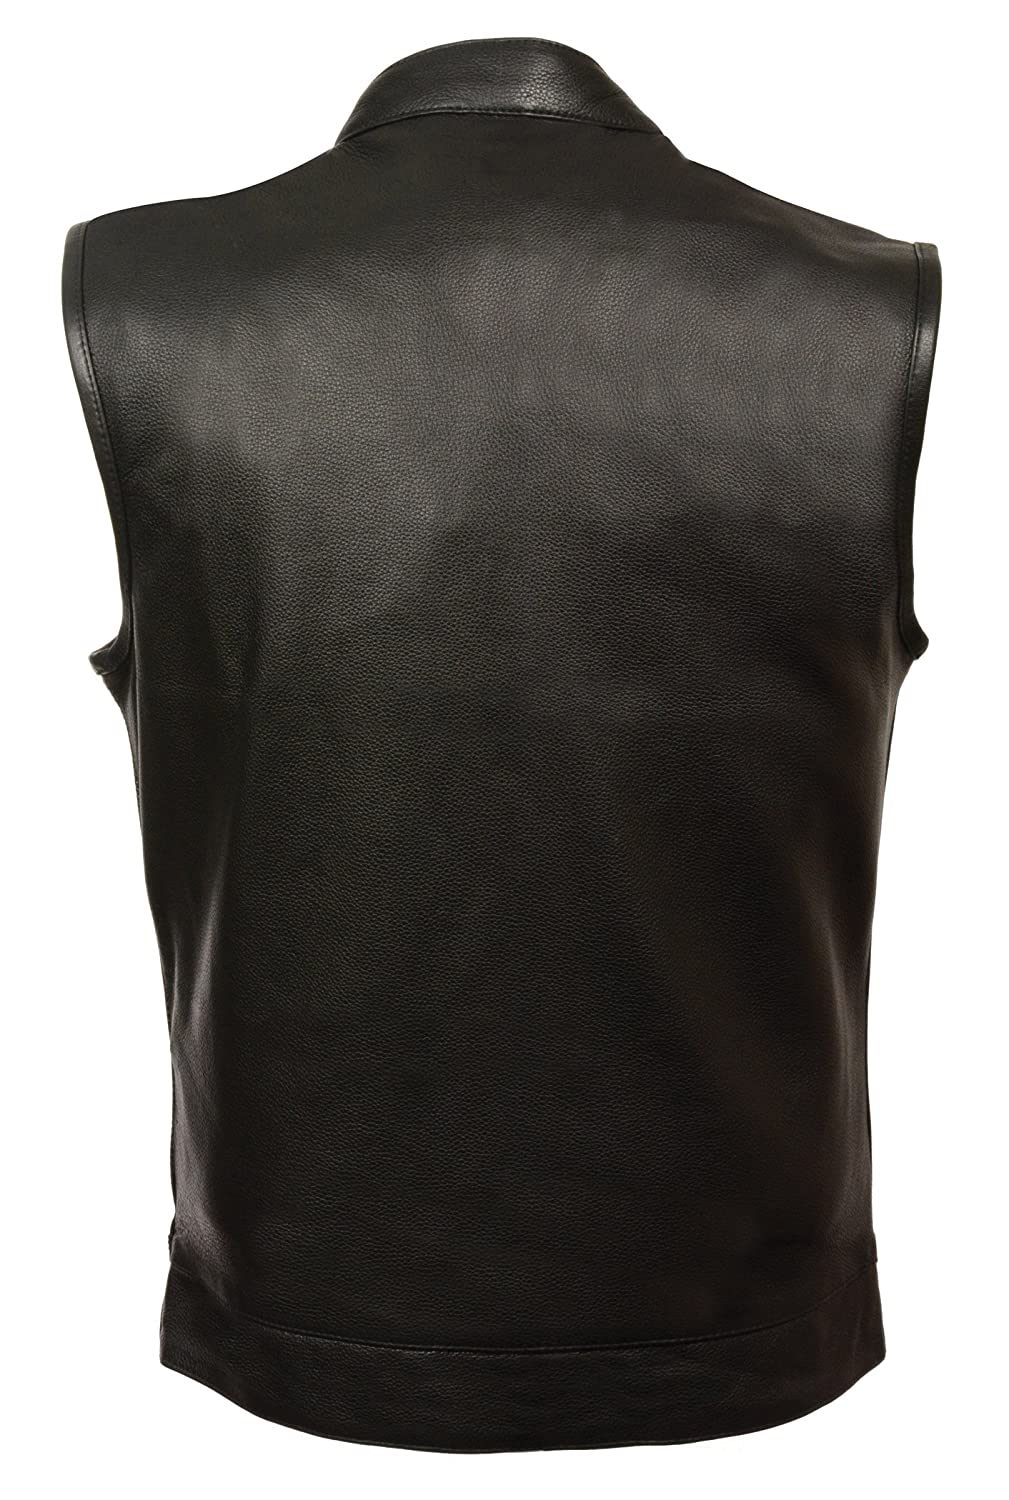 Men/'s Leather Vest w// Dual Inside Gun Pockets /& 1 Panel Back for Club Patches